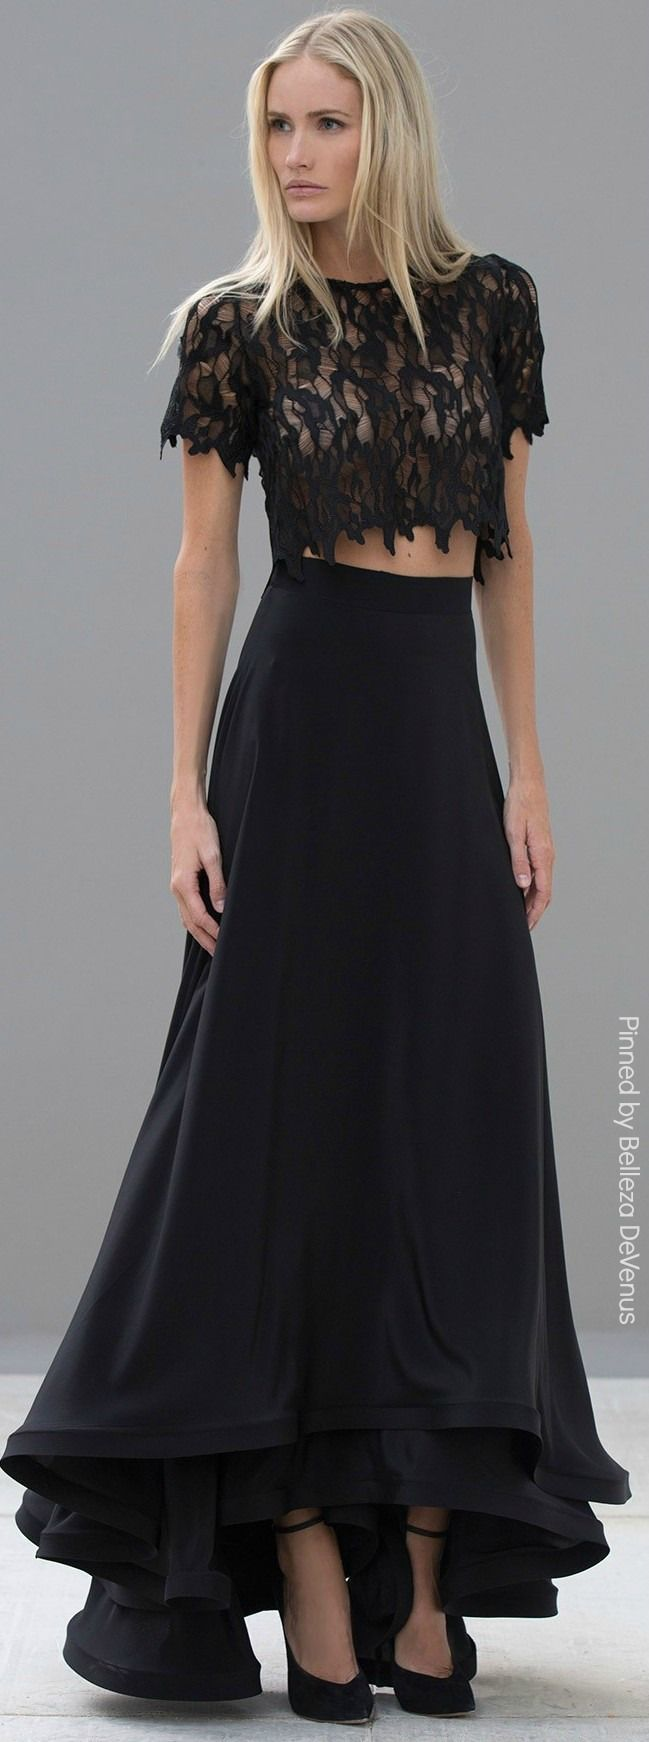 black lace top and black maxi skirt the maxi skirt